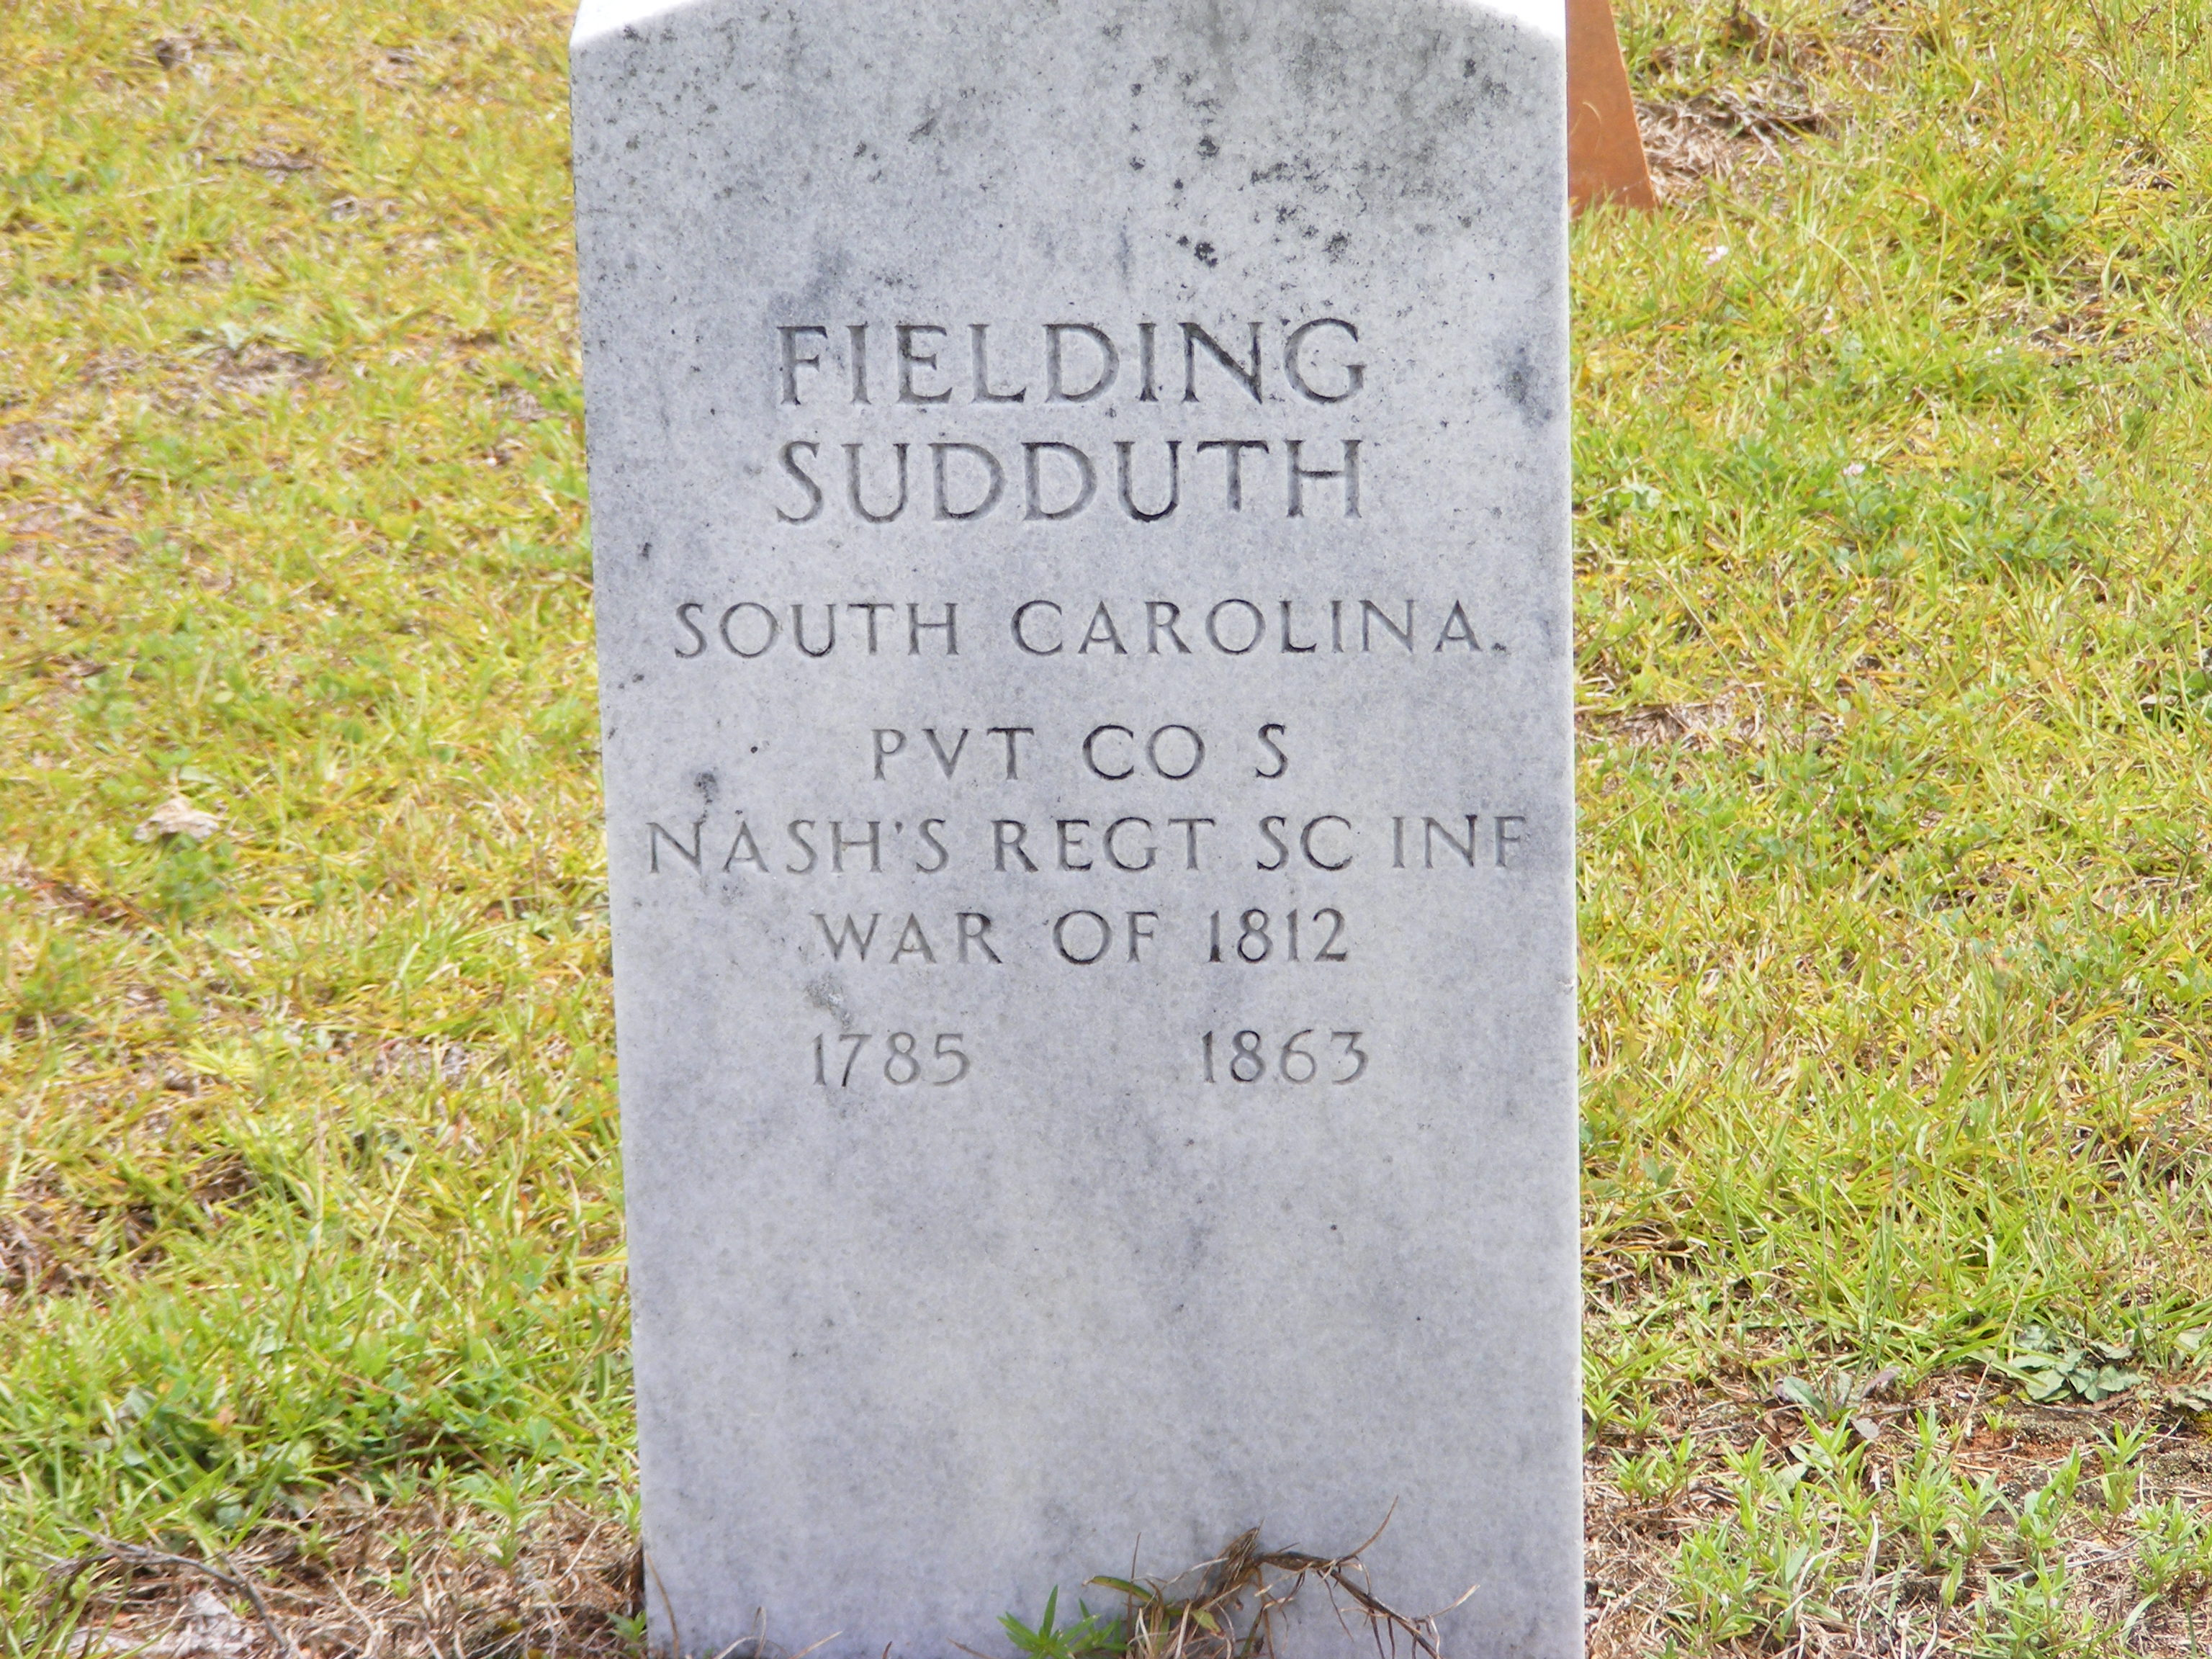 John Fielding Sudduth